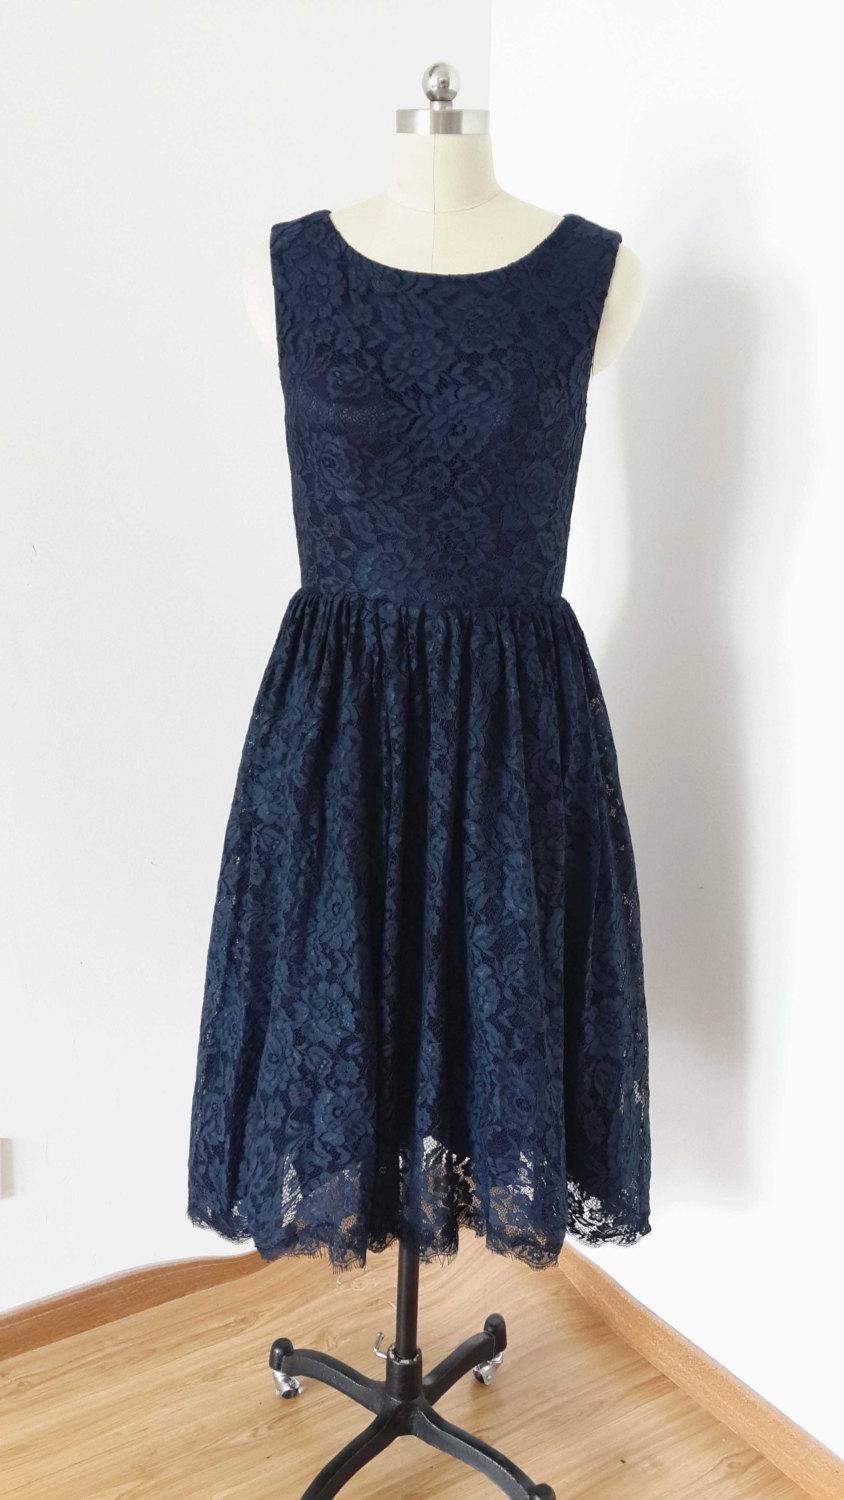 Hochzeit - 2015 Scoop Navy Blue Lace Short Bridesmaid Dress with Back Buttons